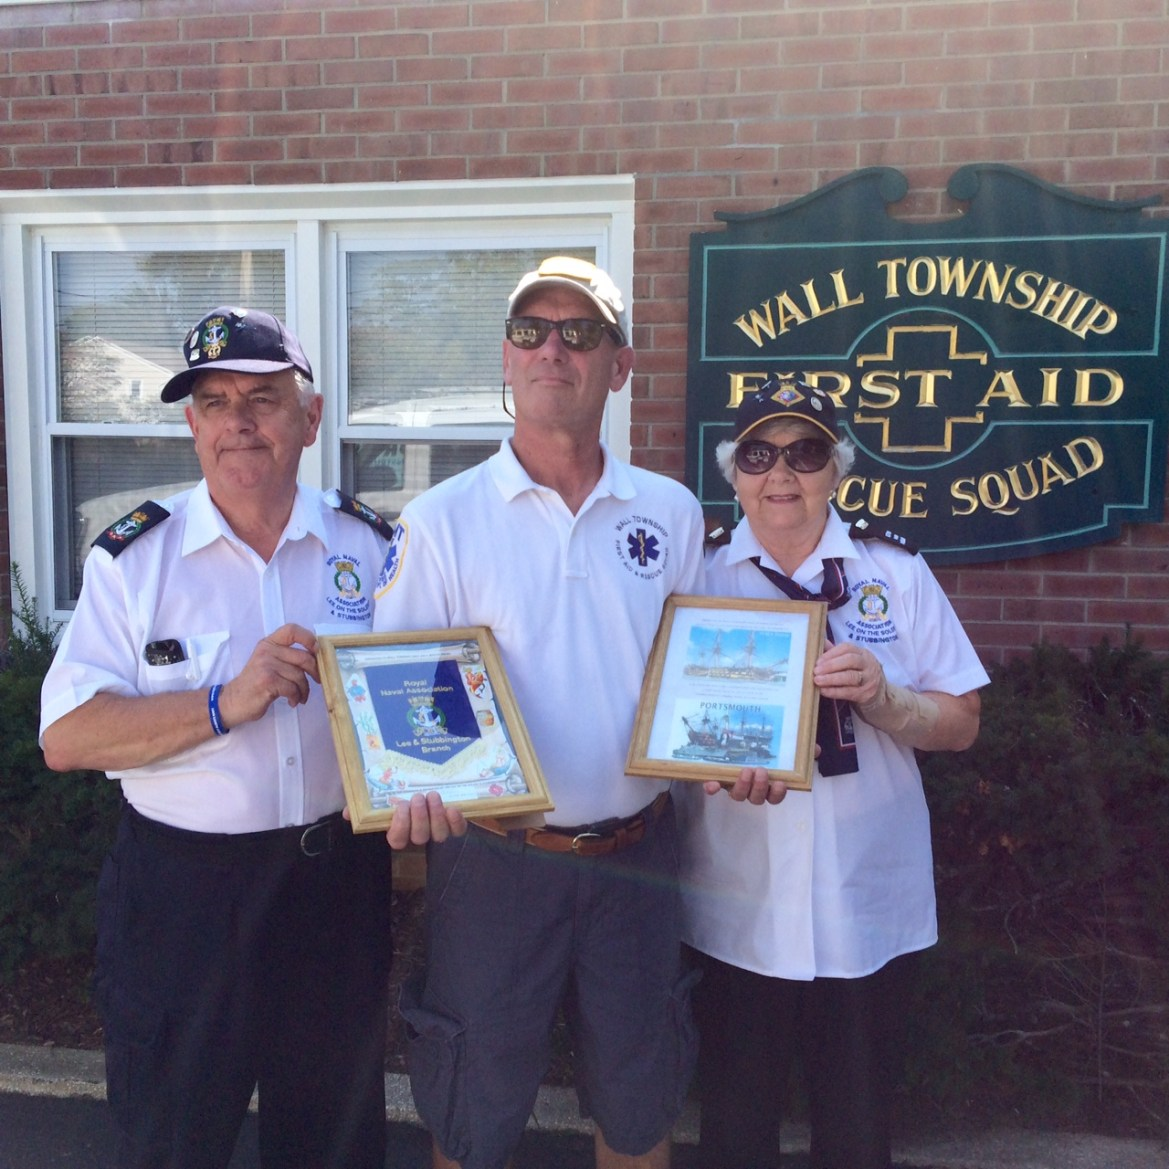 Paul and Ann Watson making the presentation to Squad Captain Joe Messer.